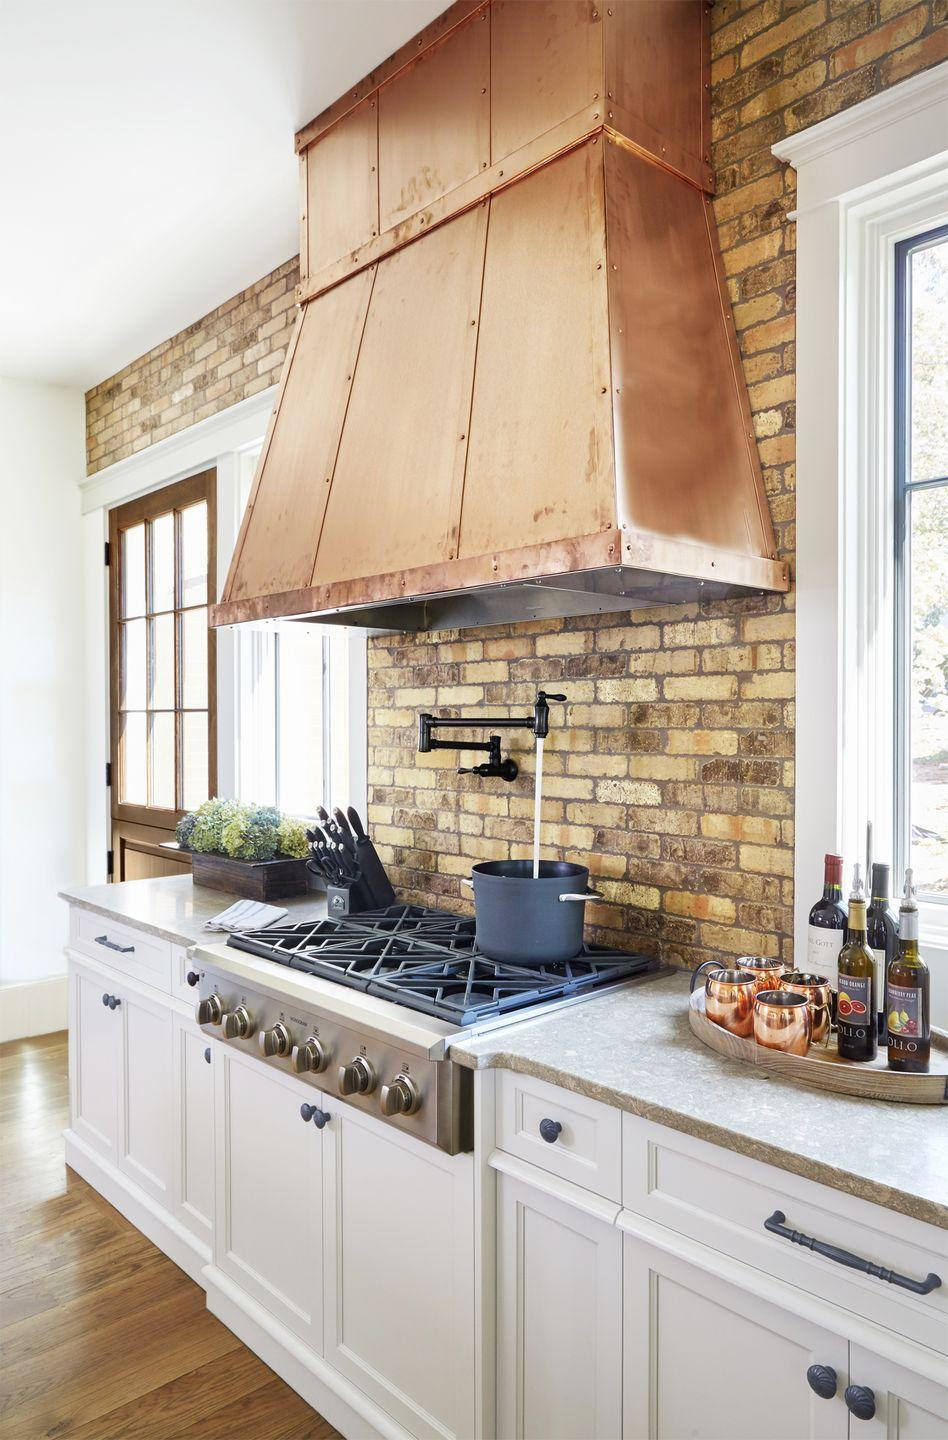 "<p>The open shelving trend isn't going anywhere, and in a kitchen void of upper cabinetry, the hood is inevitably the centerpiece. Dress it accordingly! Copper sheeting, with coordinating straps and rivets, adds age-old warmth<span class=""redactor-invisible-space"">.</span></p><p><span class=""redactor-invisible-space""><a class=""link rapid-noclick-resp"" href=""https://fave.co/2M77YsD"" rel=""nofollow noopener"" target=""_blank"" data-ylk=""slk:SHOP COPPER HOODS"">SHOP COPPER HOODS</a><br></span></p>"